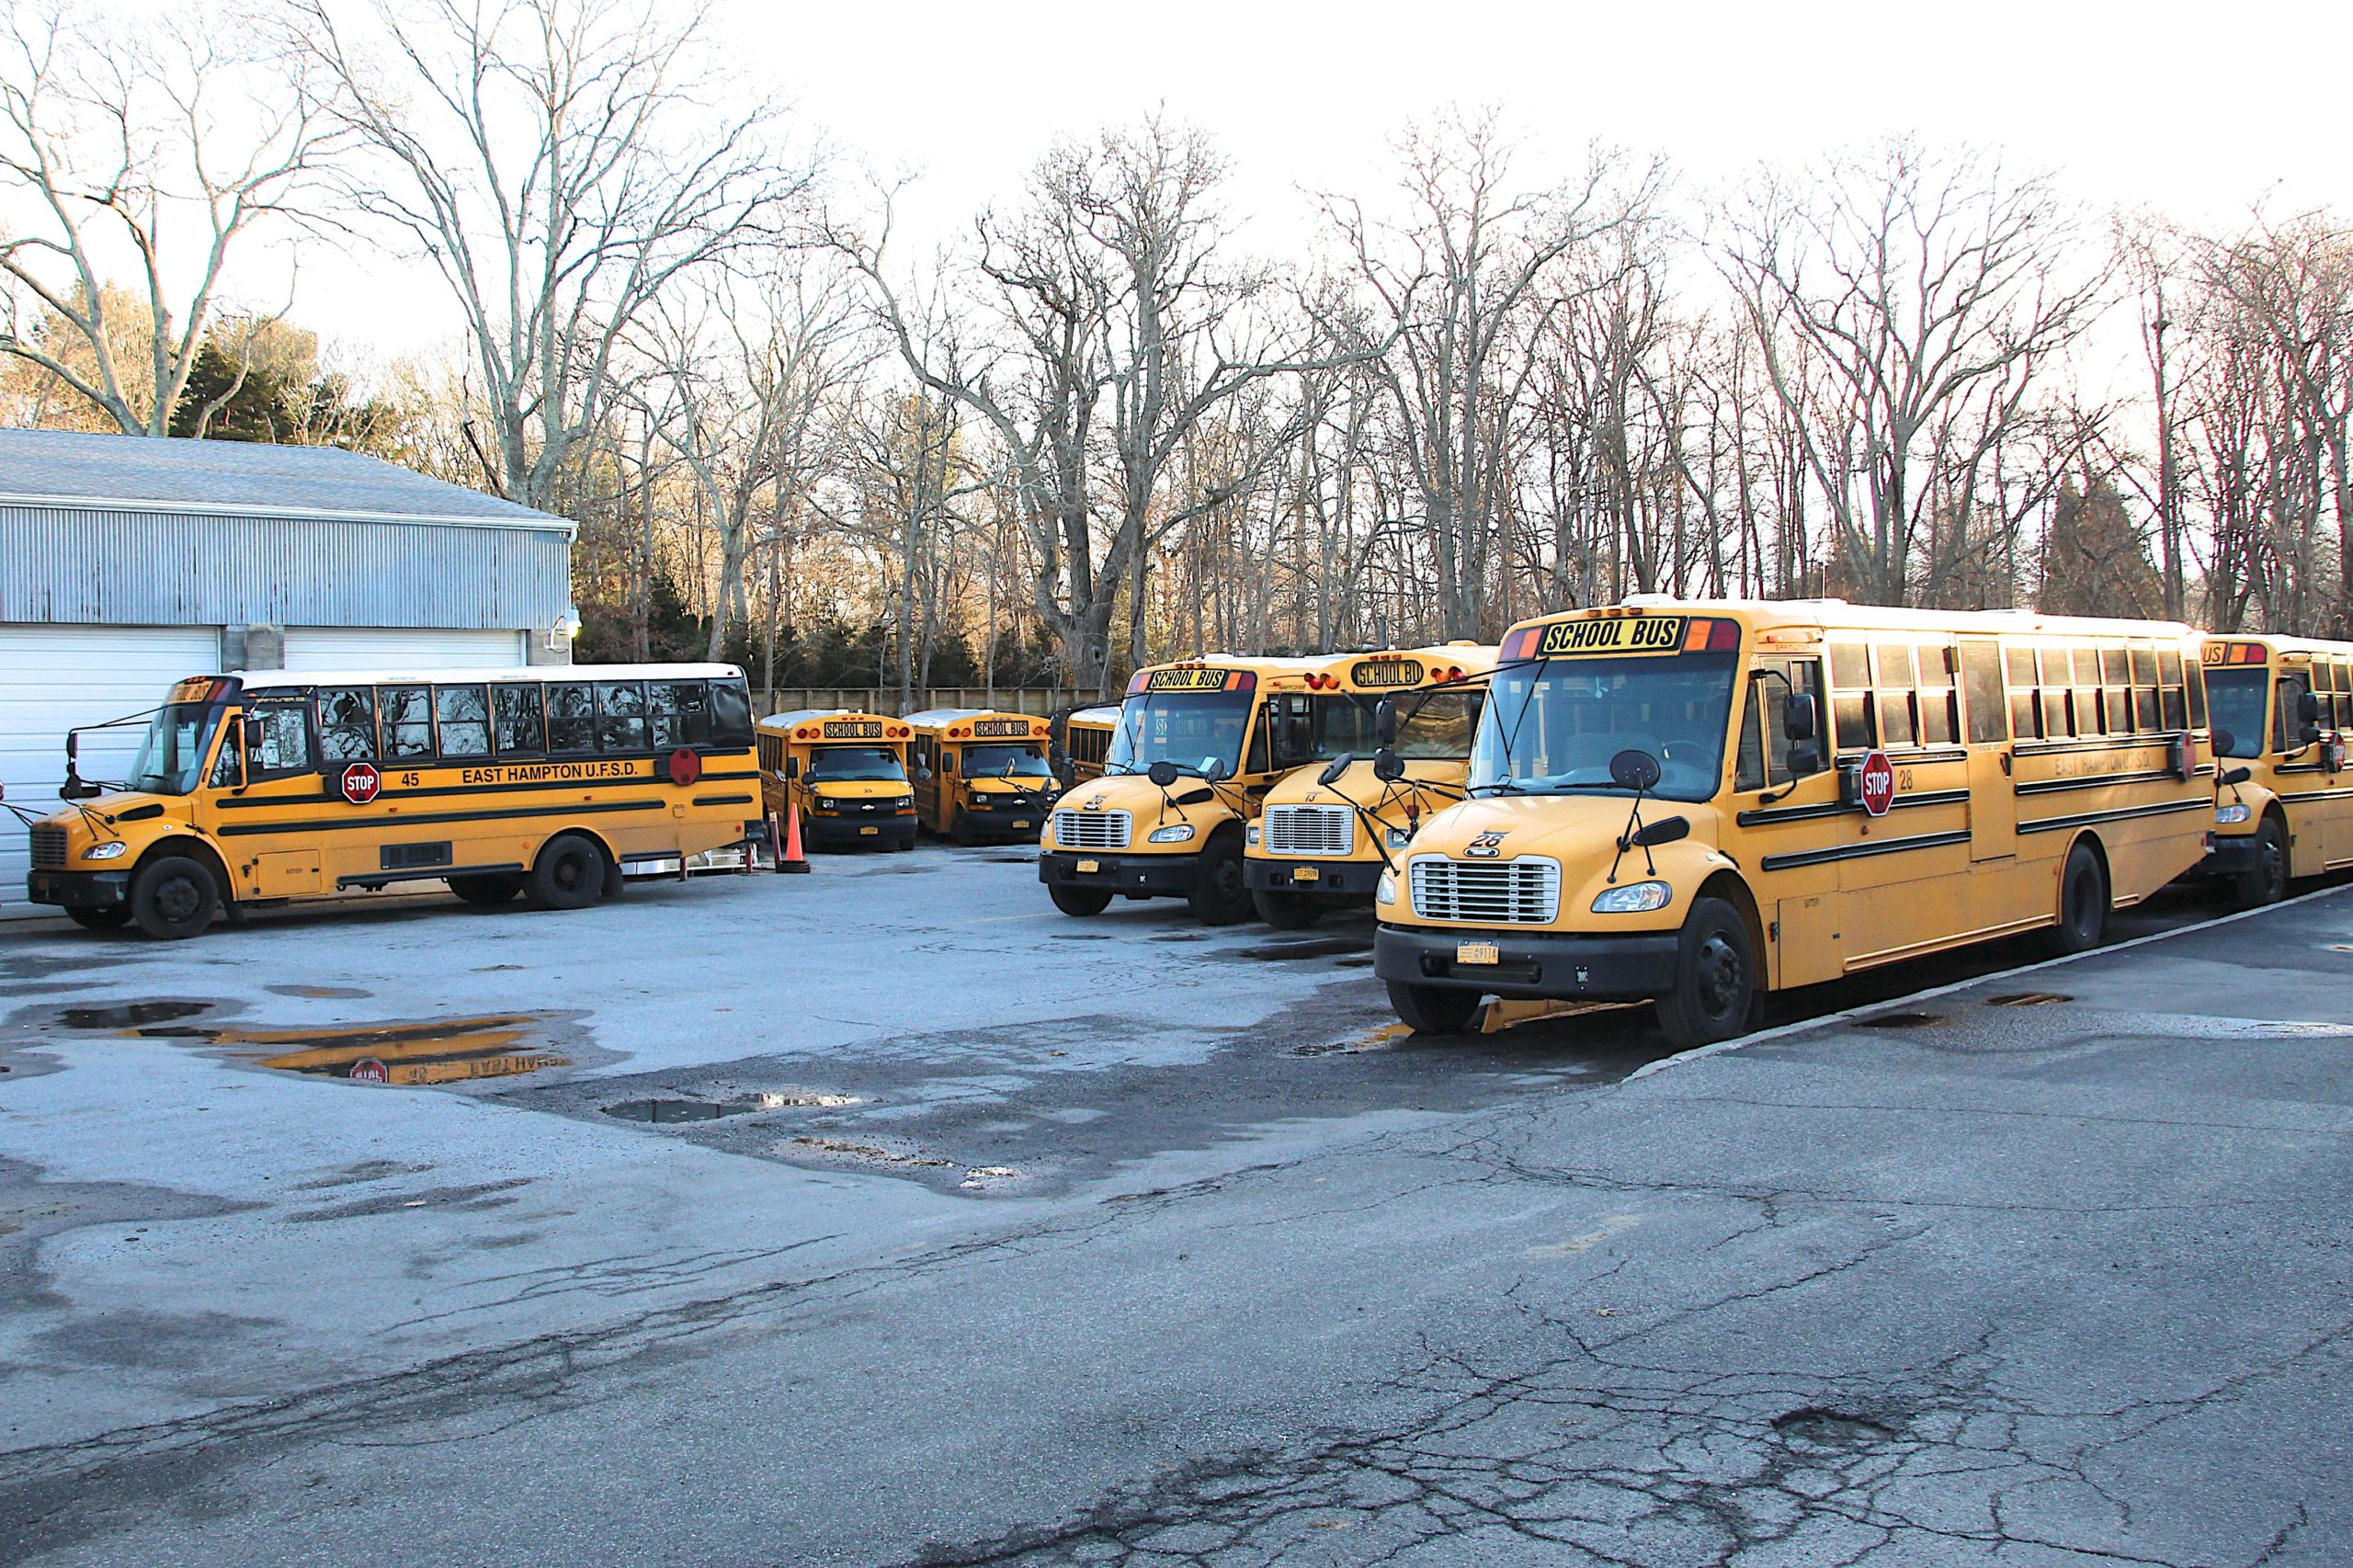 The East Hampton School District has been leasing the former Schaefer Bus Company property on Route 114 to store its bus fleet. The district will be moving the operation to property it approached next to the East Hampton Town Recycling Center on Springs-Fireplace Road. KYRIL BROMLEY